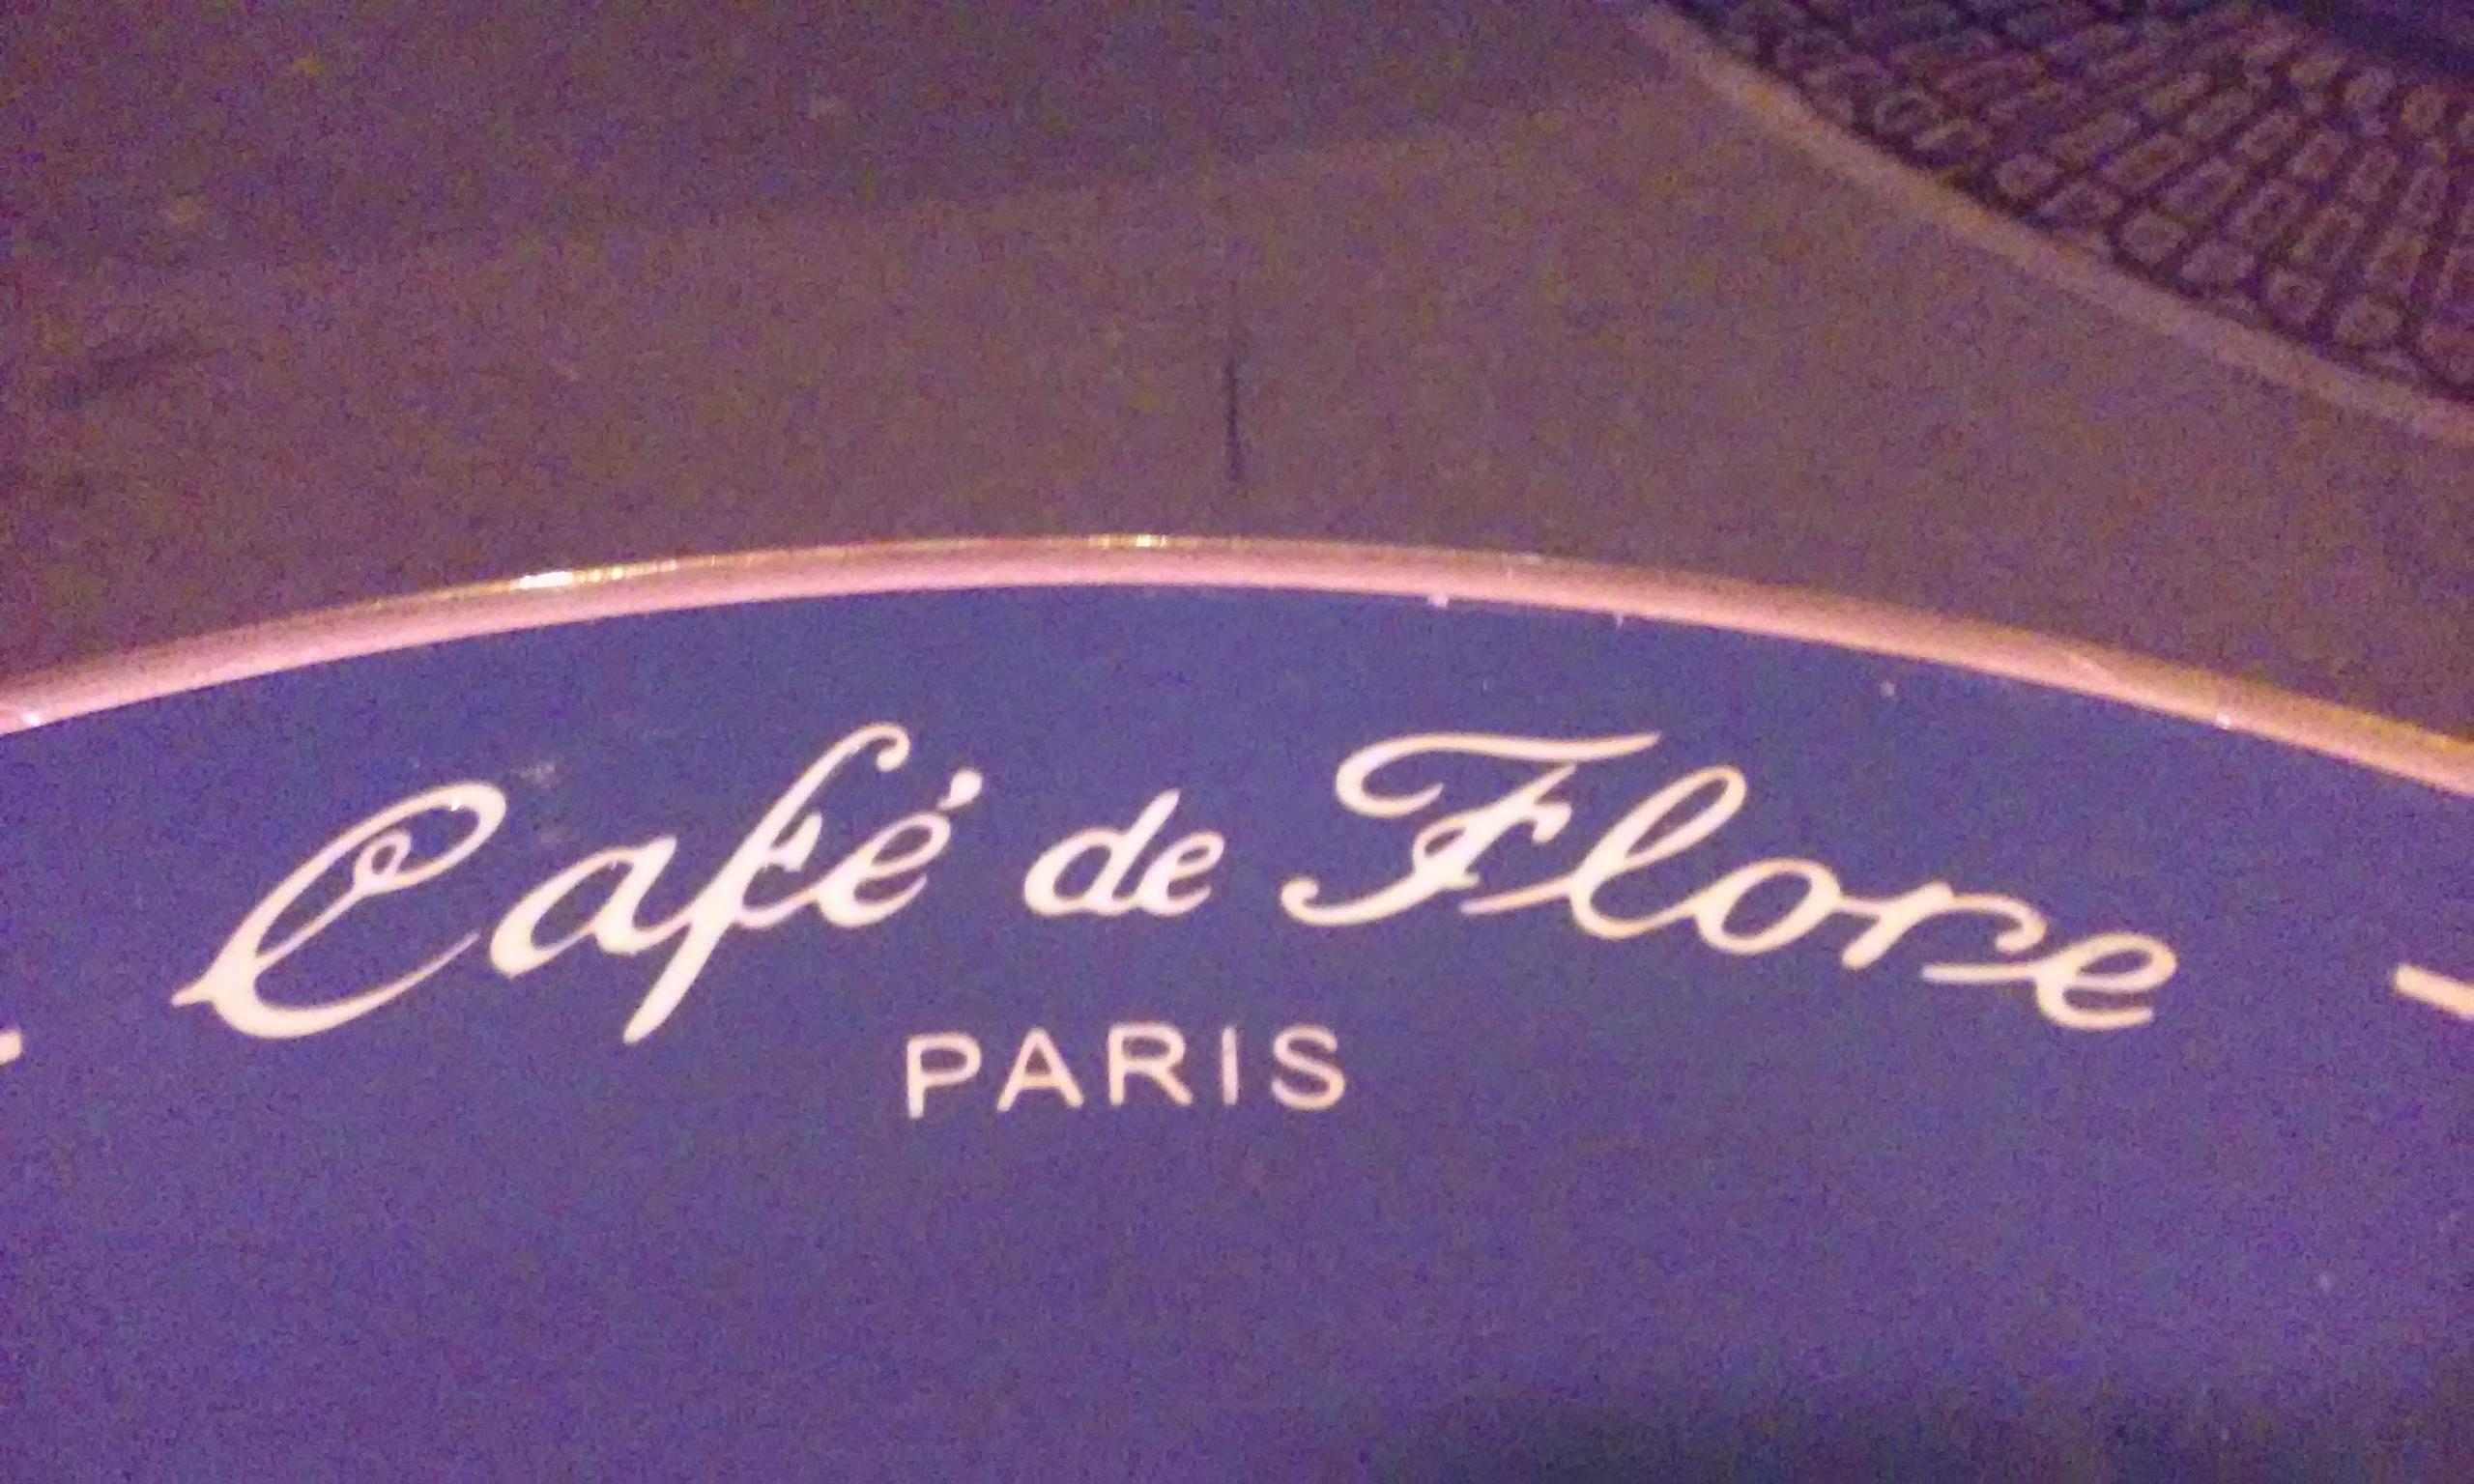 At least I get a view with my $5 coffee in Paris and outdoor seating. At Cafe de Flore. No